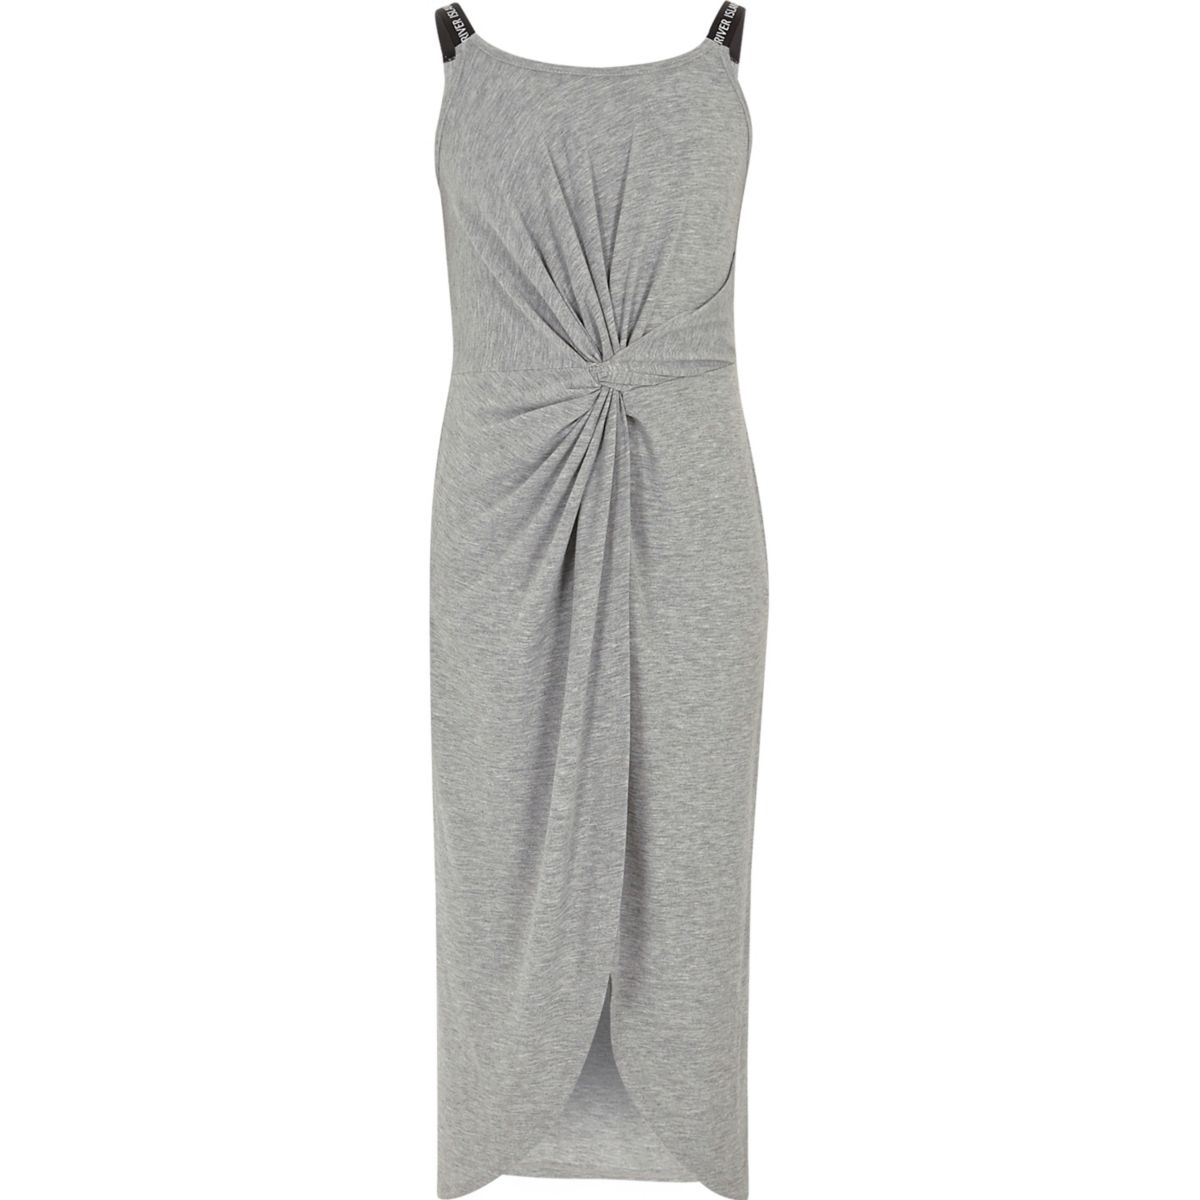 Girls grey marl twist front maxi dress